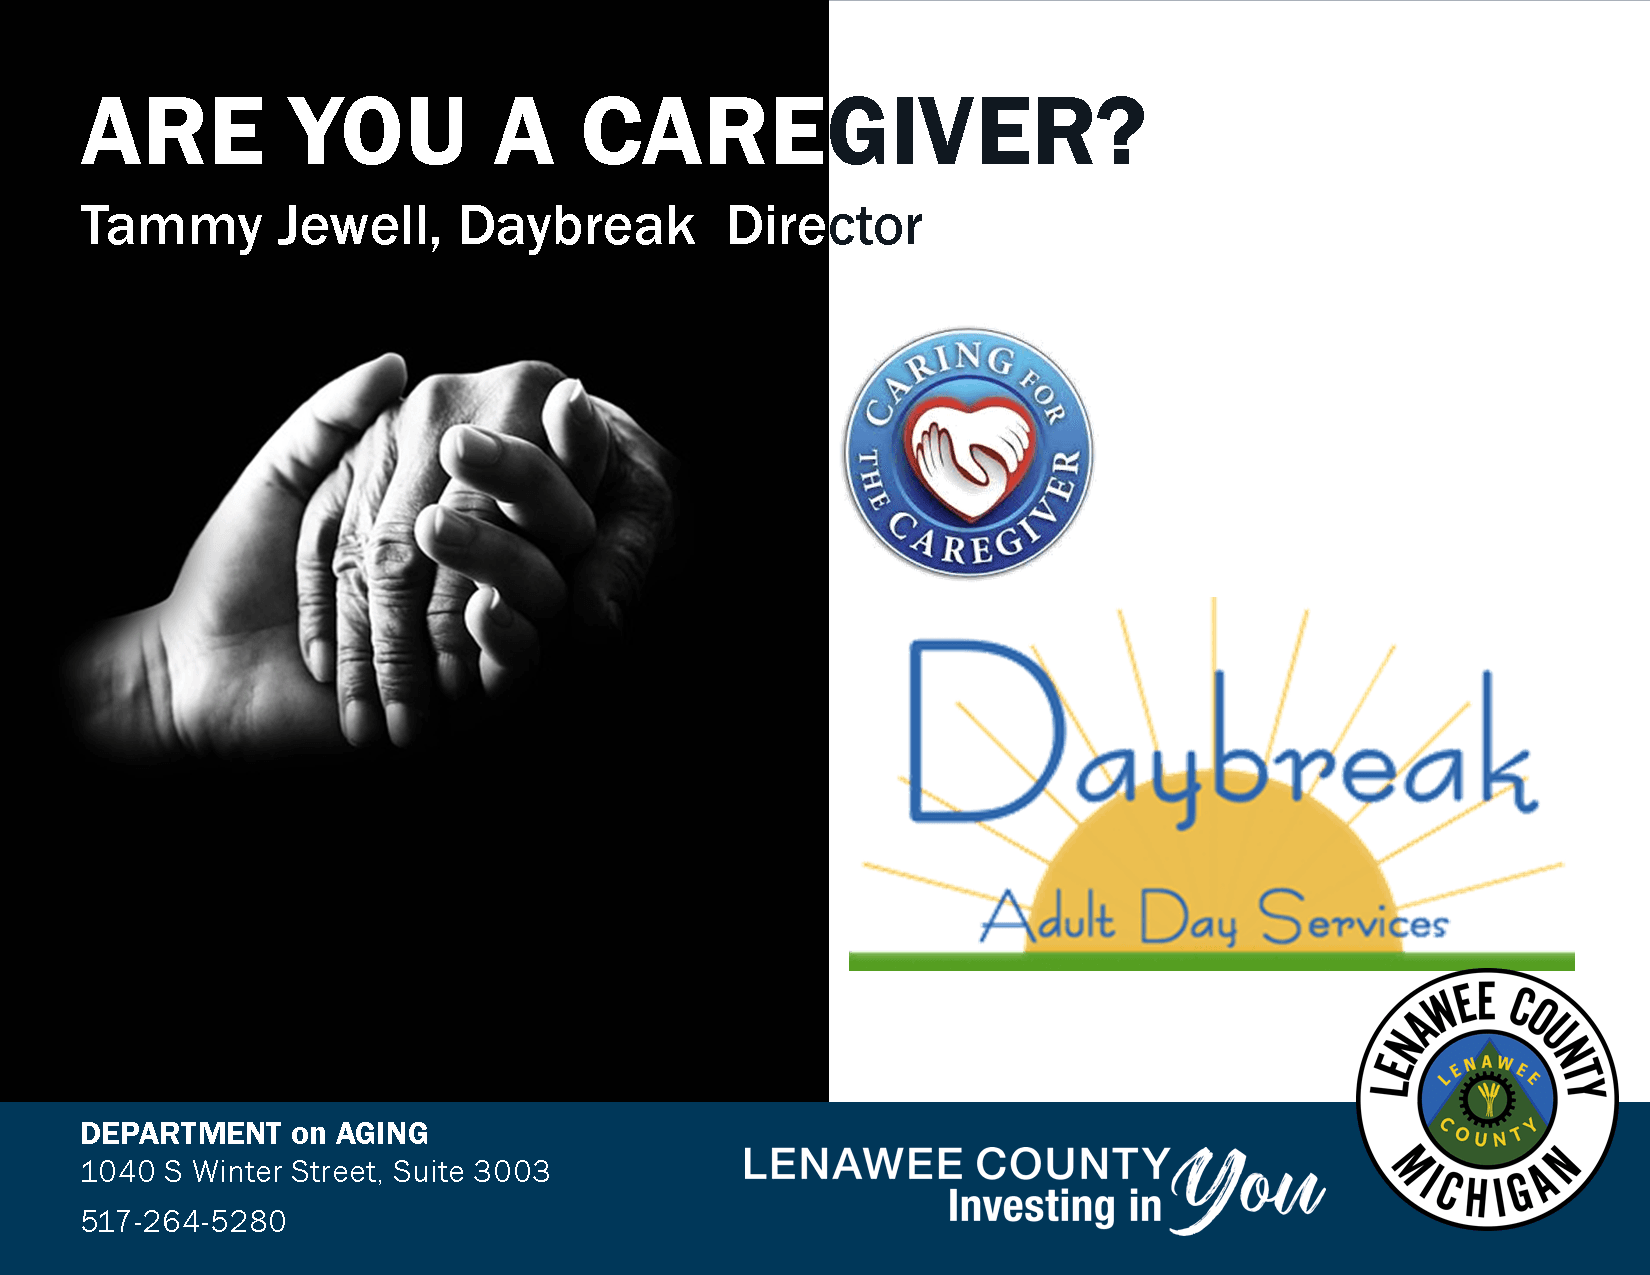 Caregiver hands, Daybreak sunrise, Caring for Cargivers